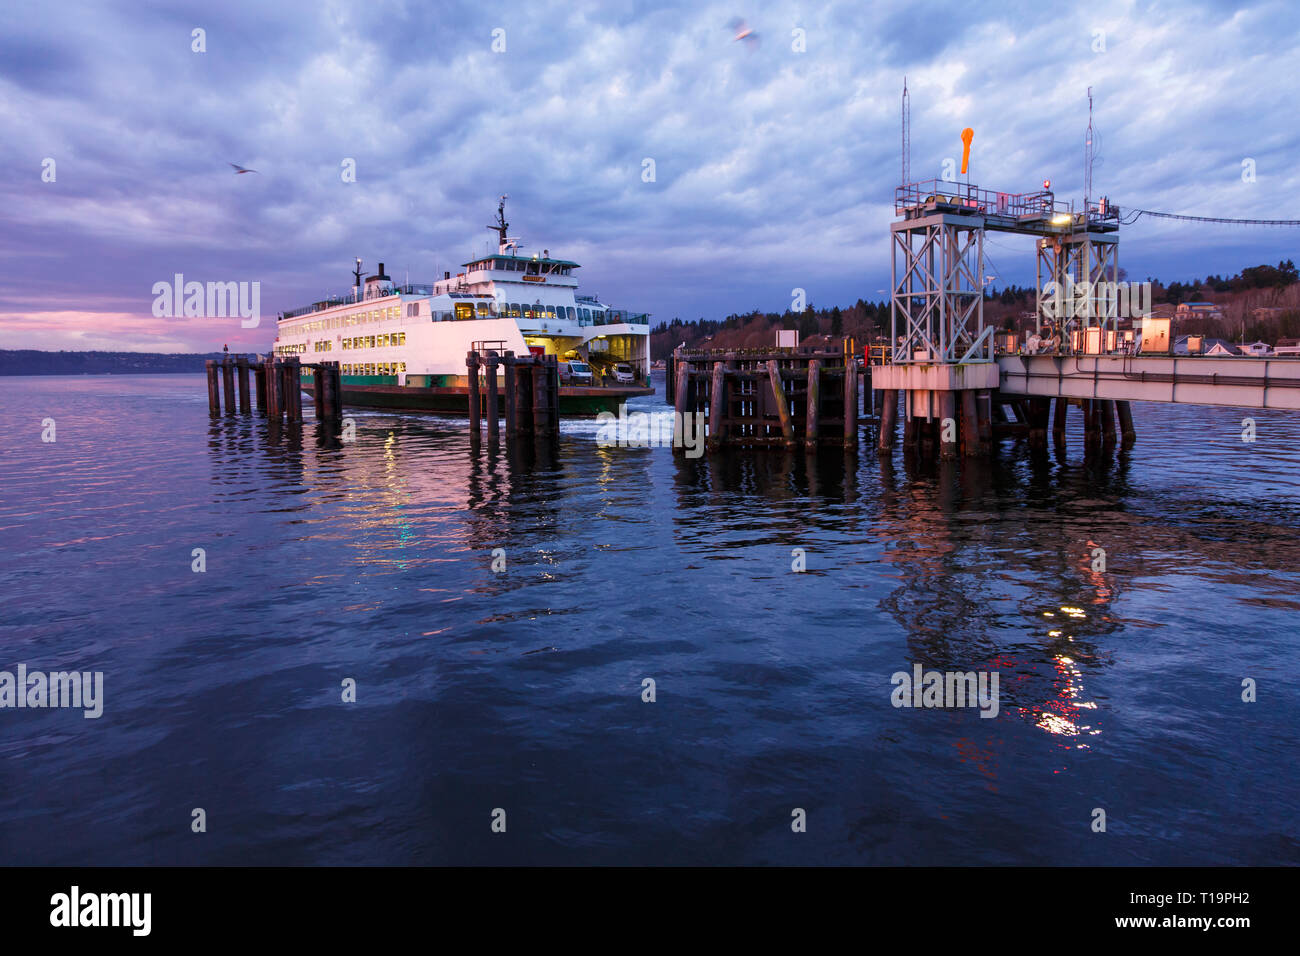 The Washington State ferry Kittitas arriving at the dock in the early morning at sunrise dawn in Clinton, Whidbey Island, WA - Stock Image